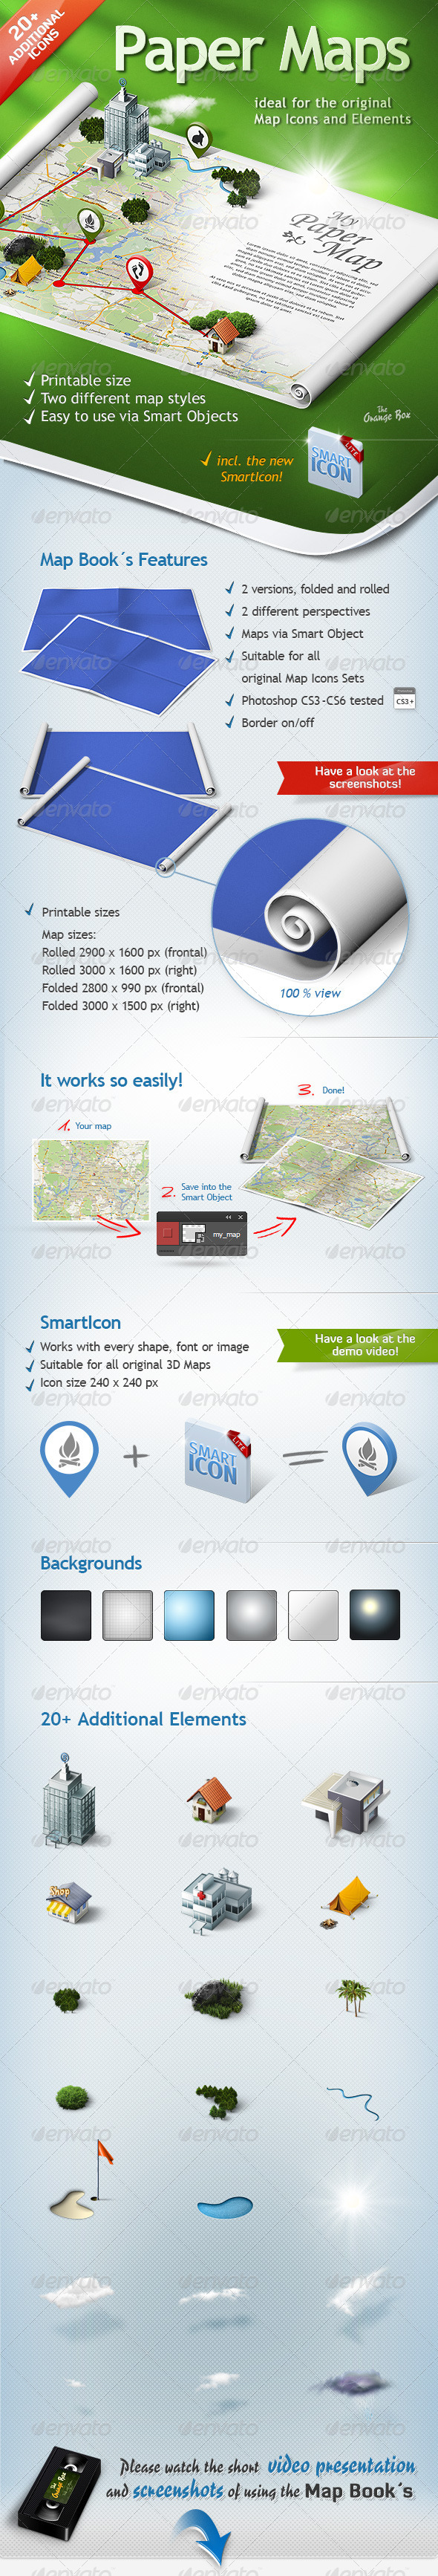 Travel Graphics, Designs & Templates from GraphicRiver